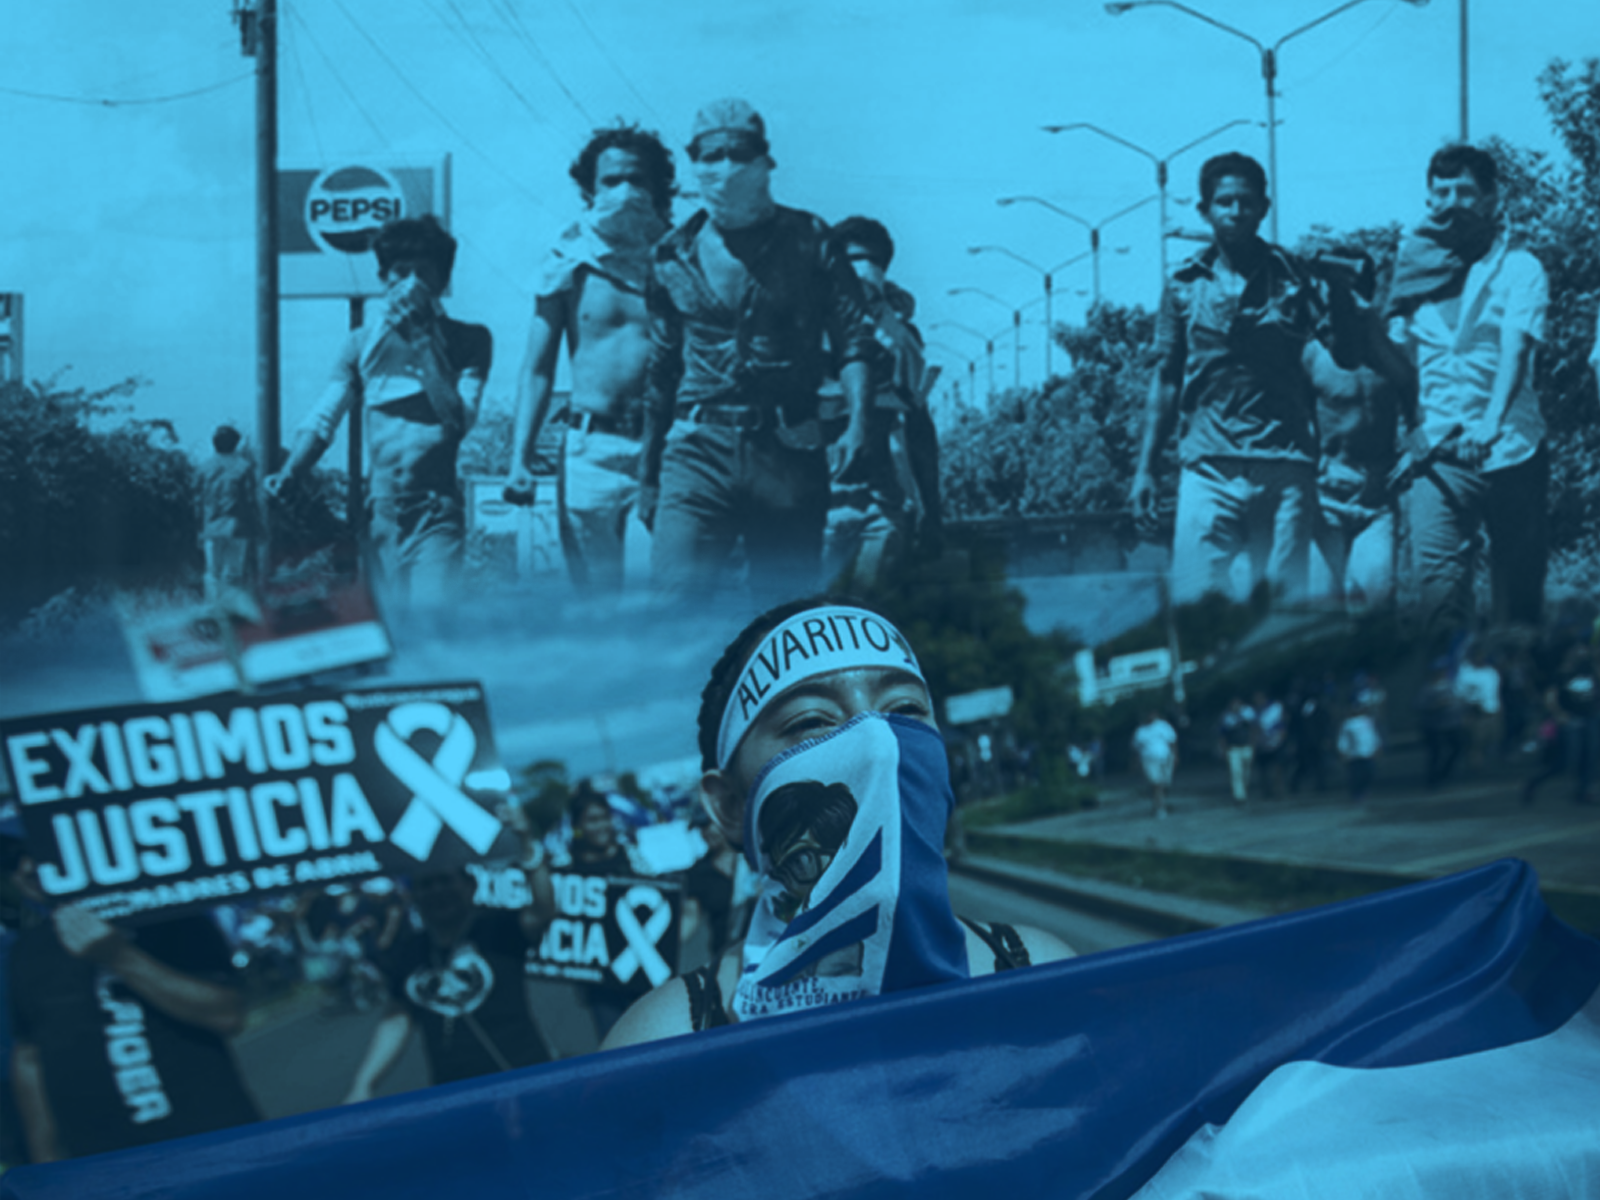 From the streets we accuse the regime Ortega-Murillo